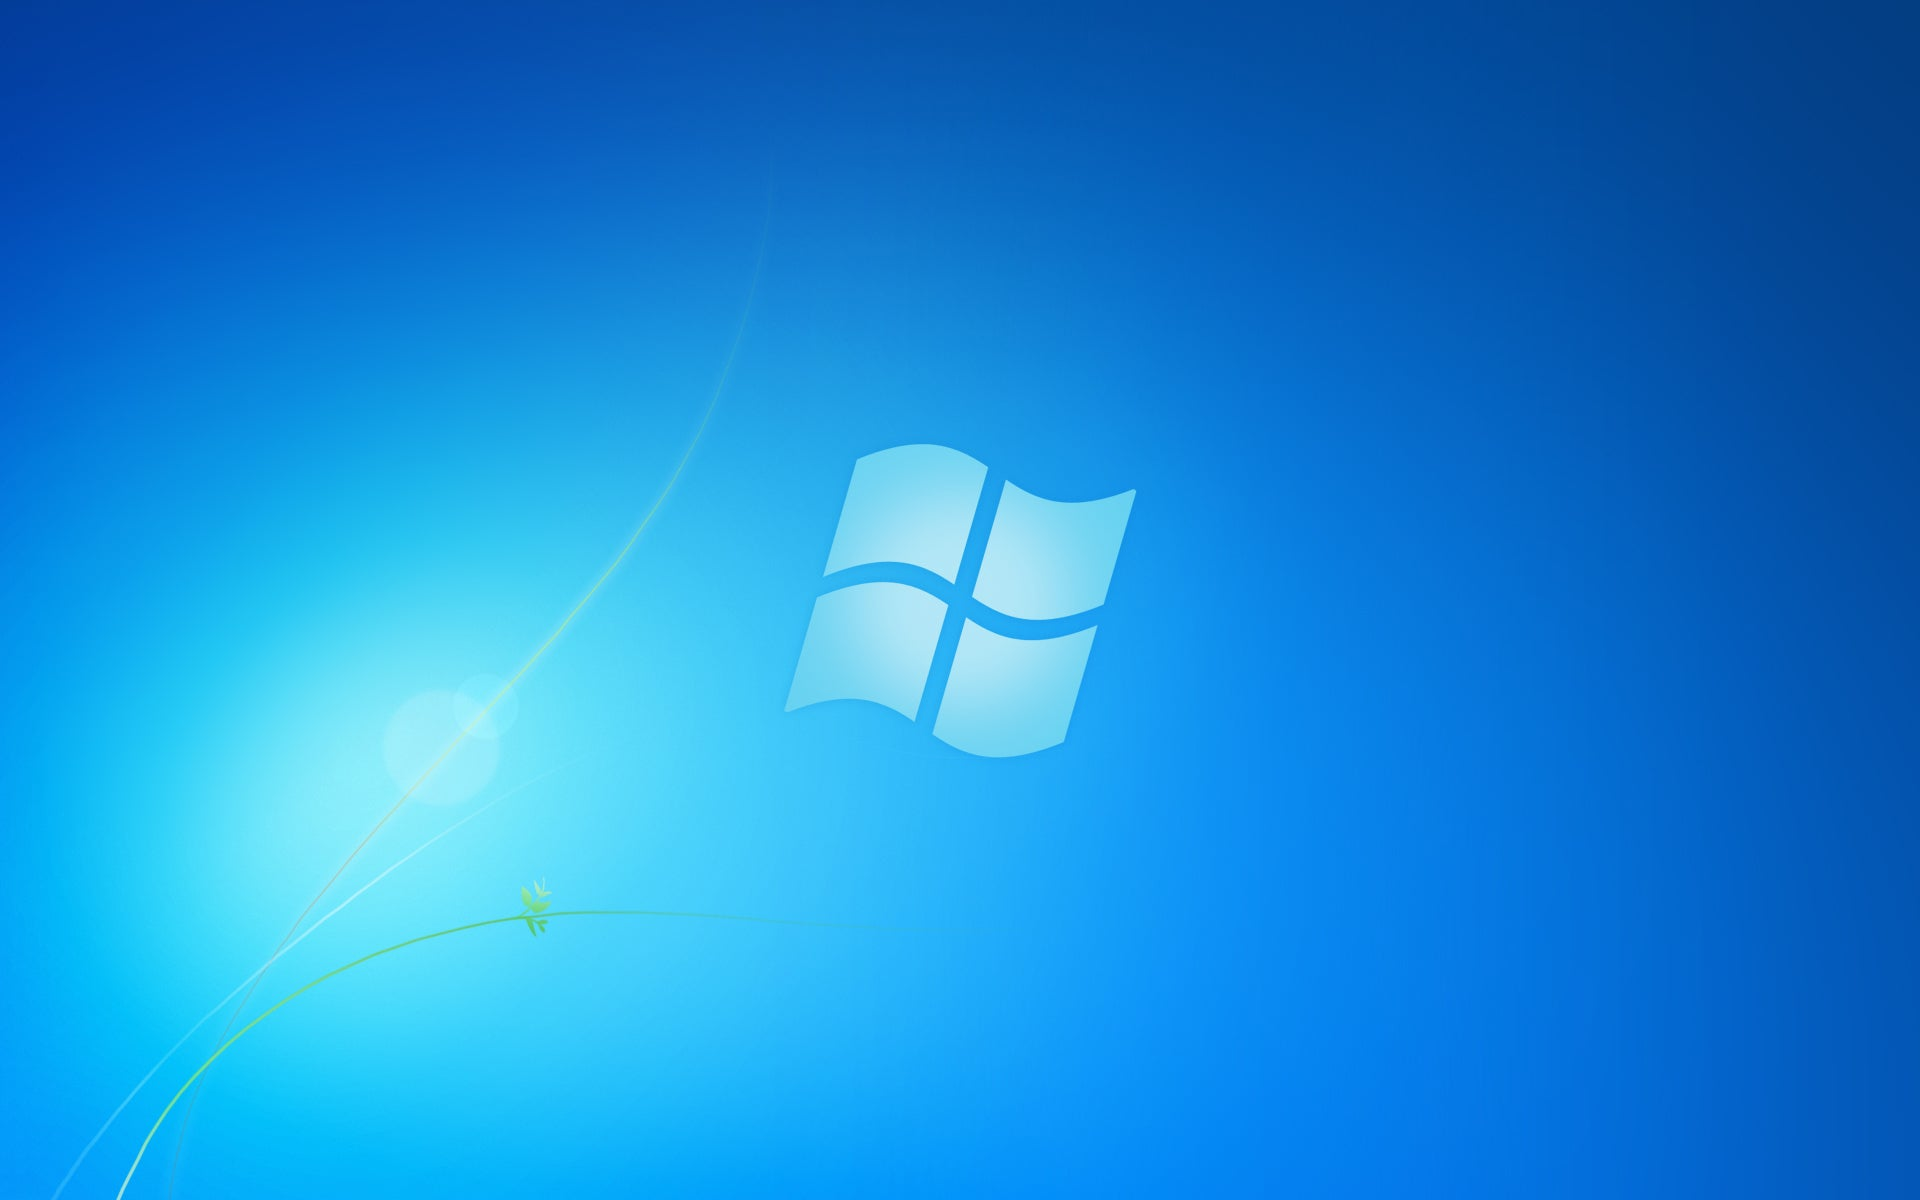 How To Change Your Wallpaper In Windows 7 Starter Edition 5